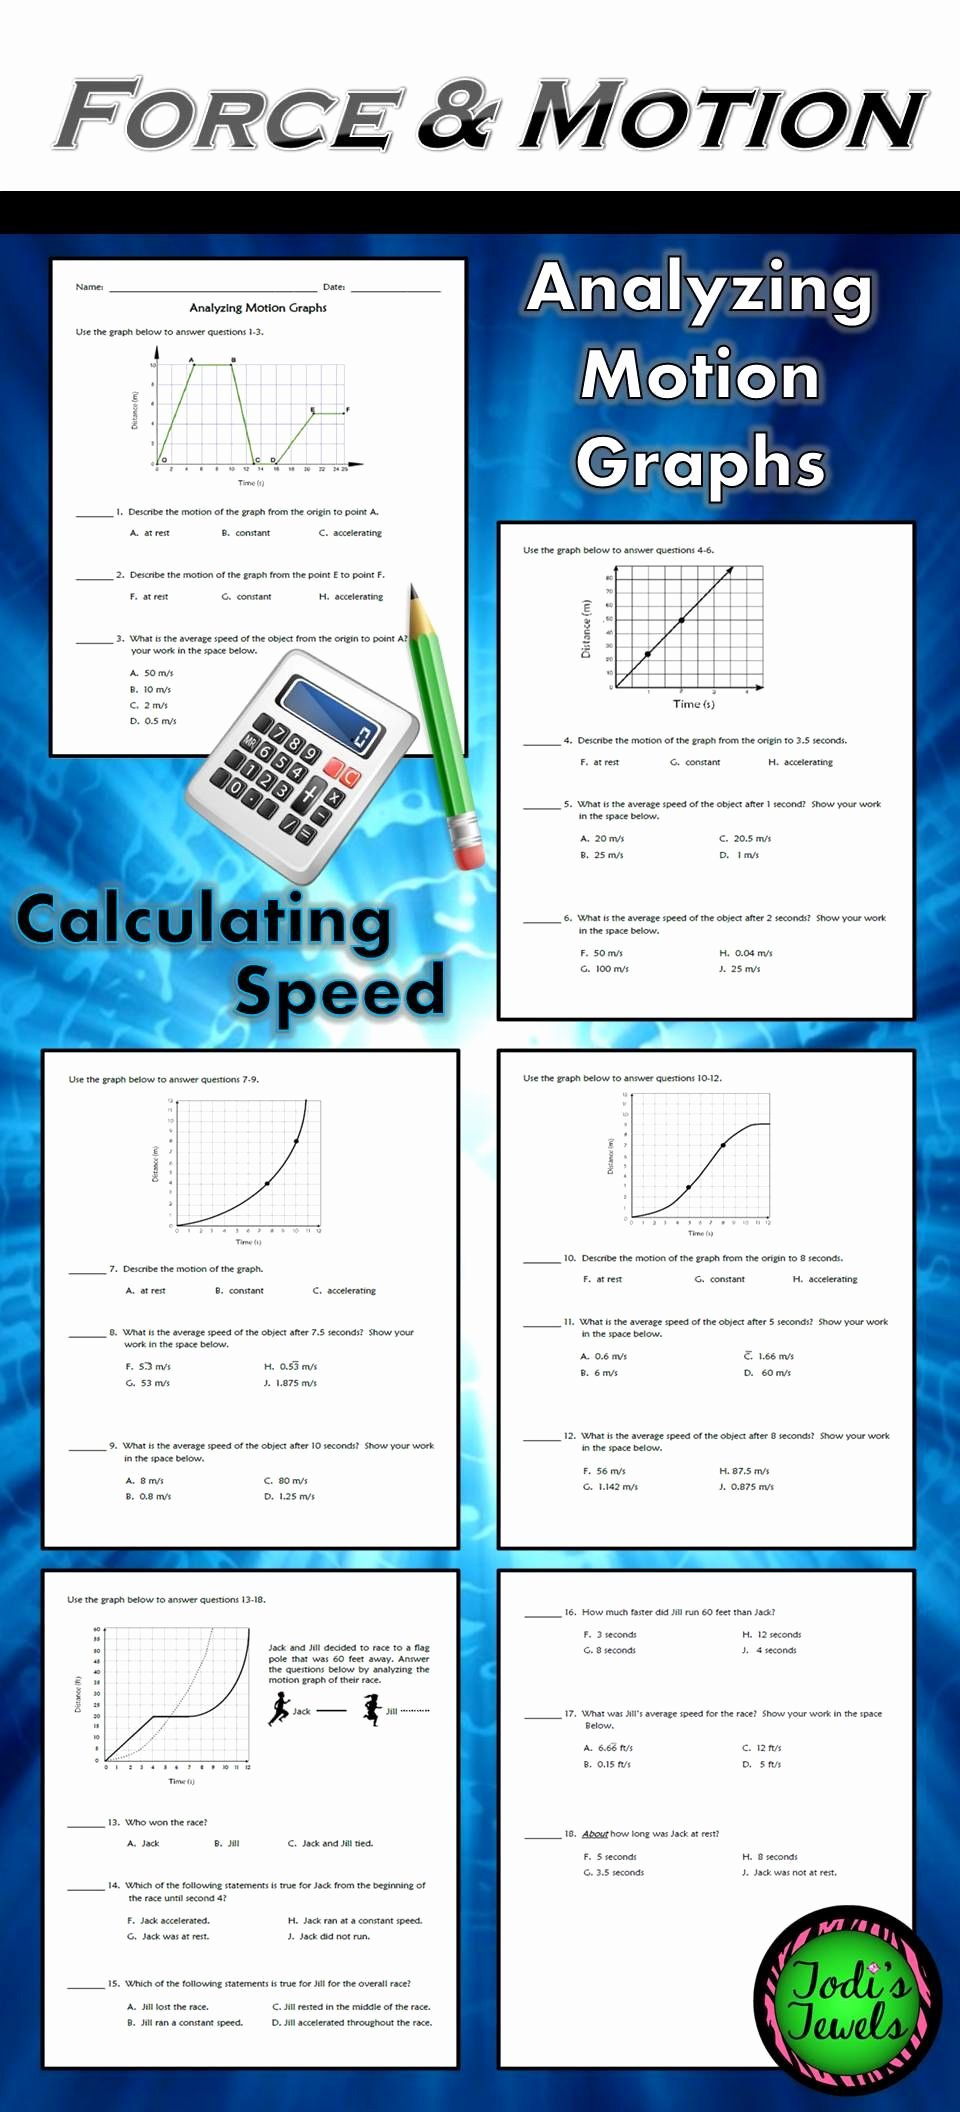 Calculating force Worksheet Answers New Analyzing Motion Graphs & Calculating Speed Ws